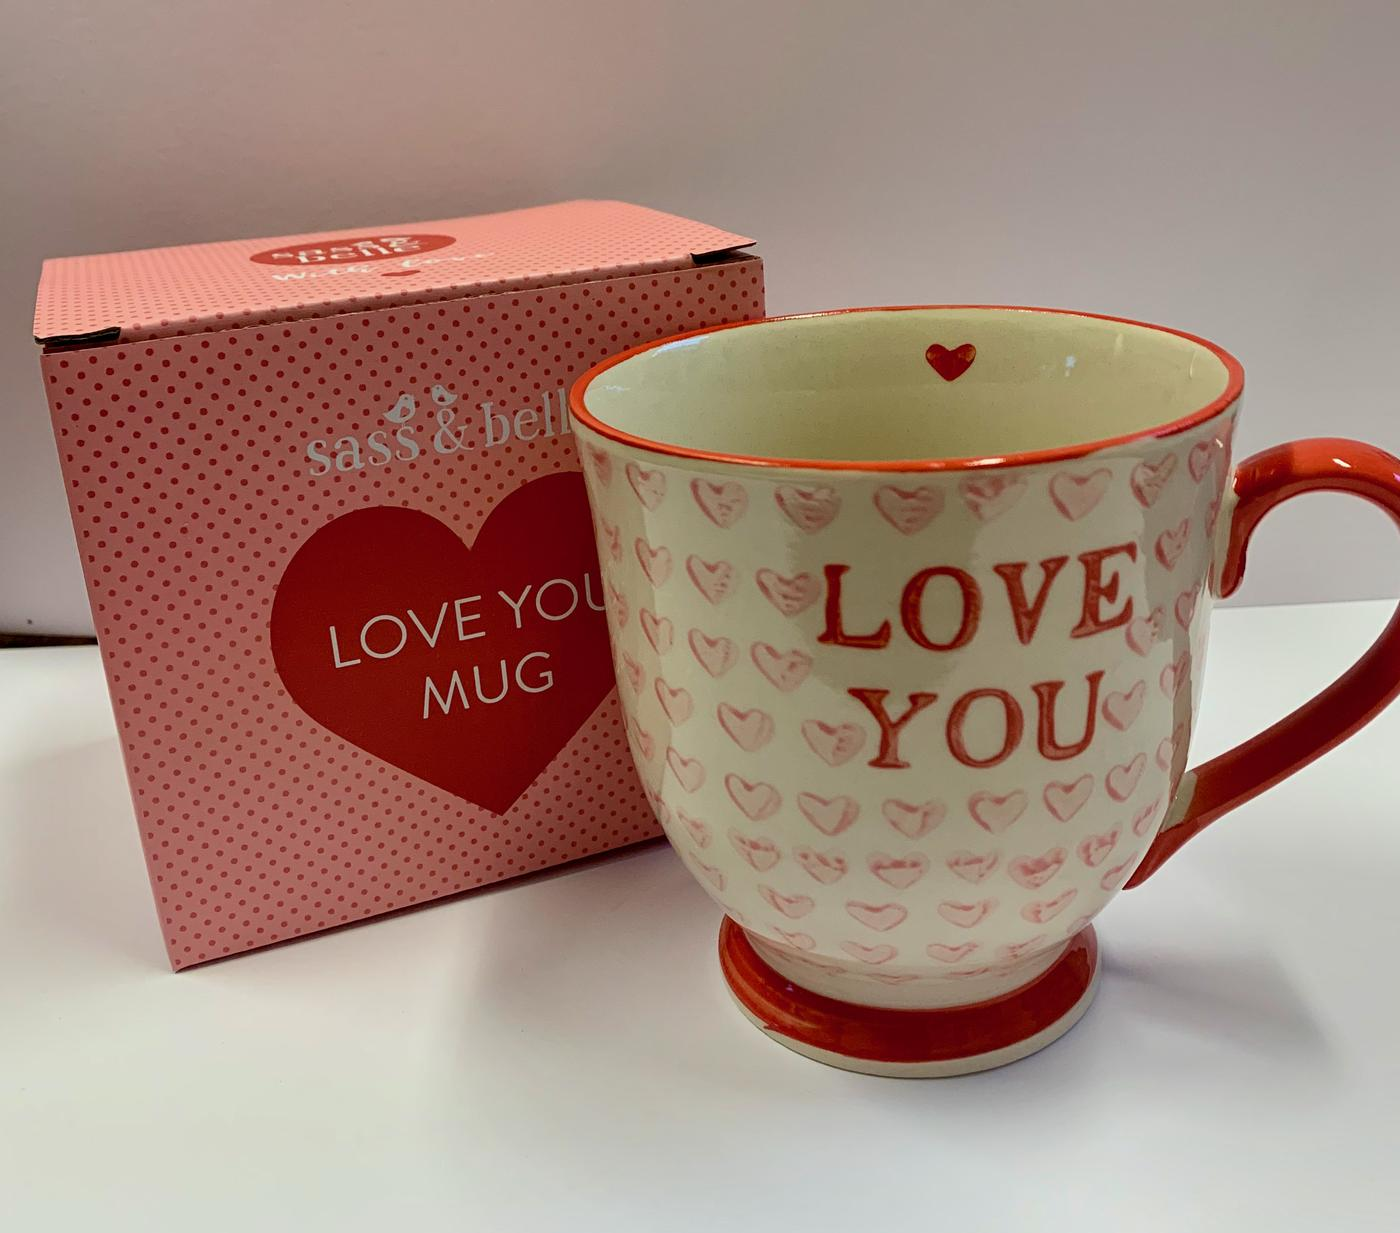 Sass - Belle Love Hearts Mug